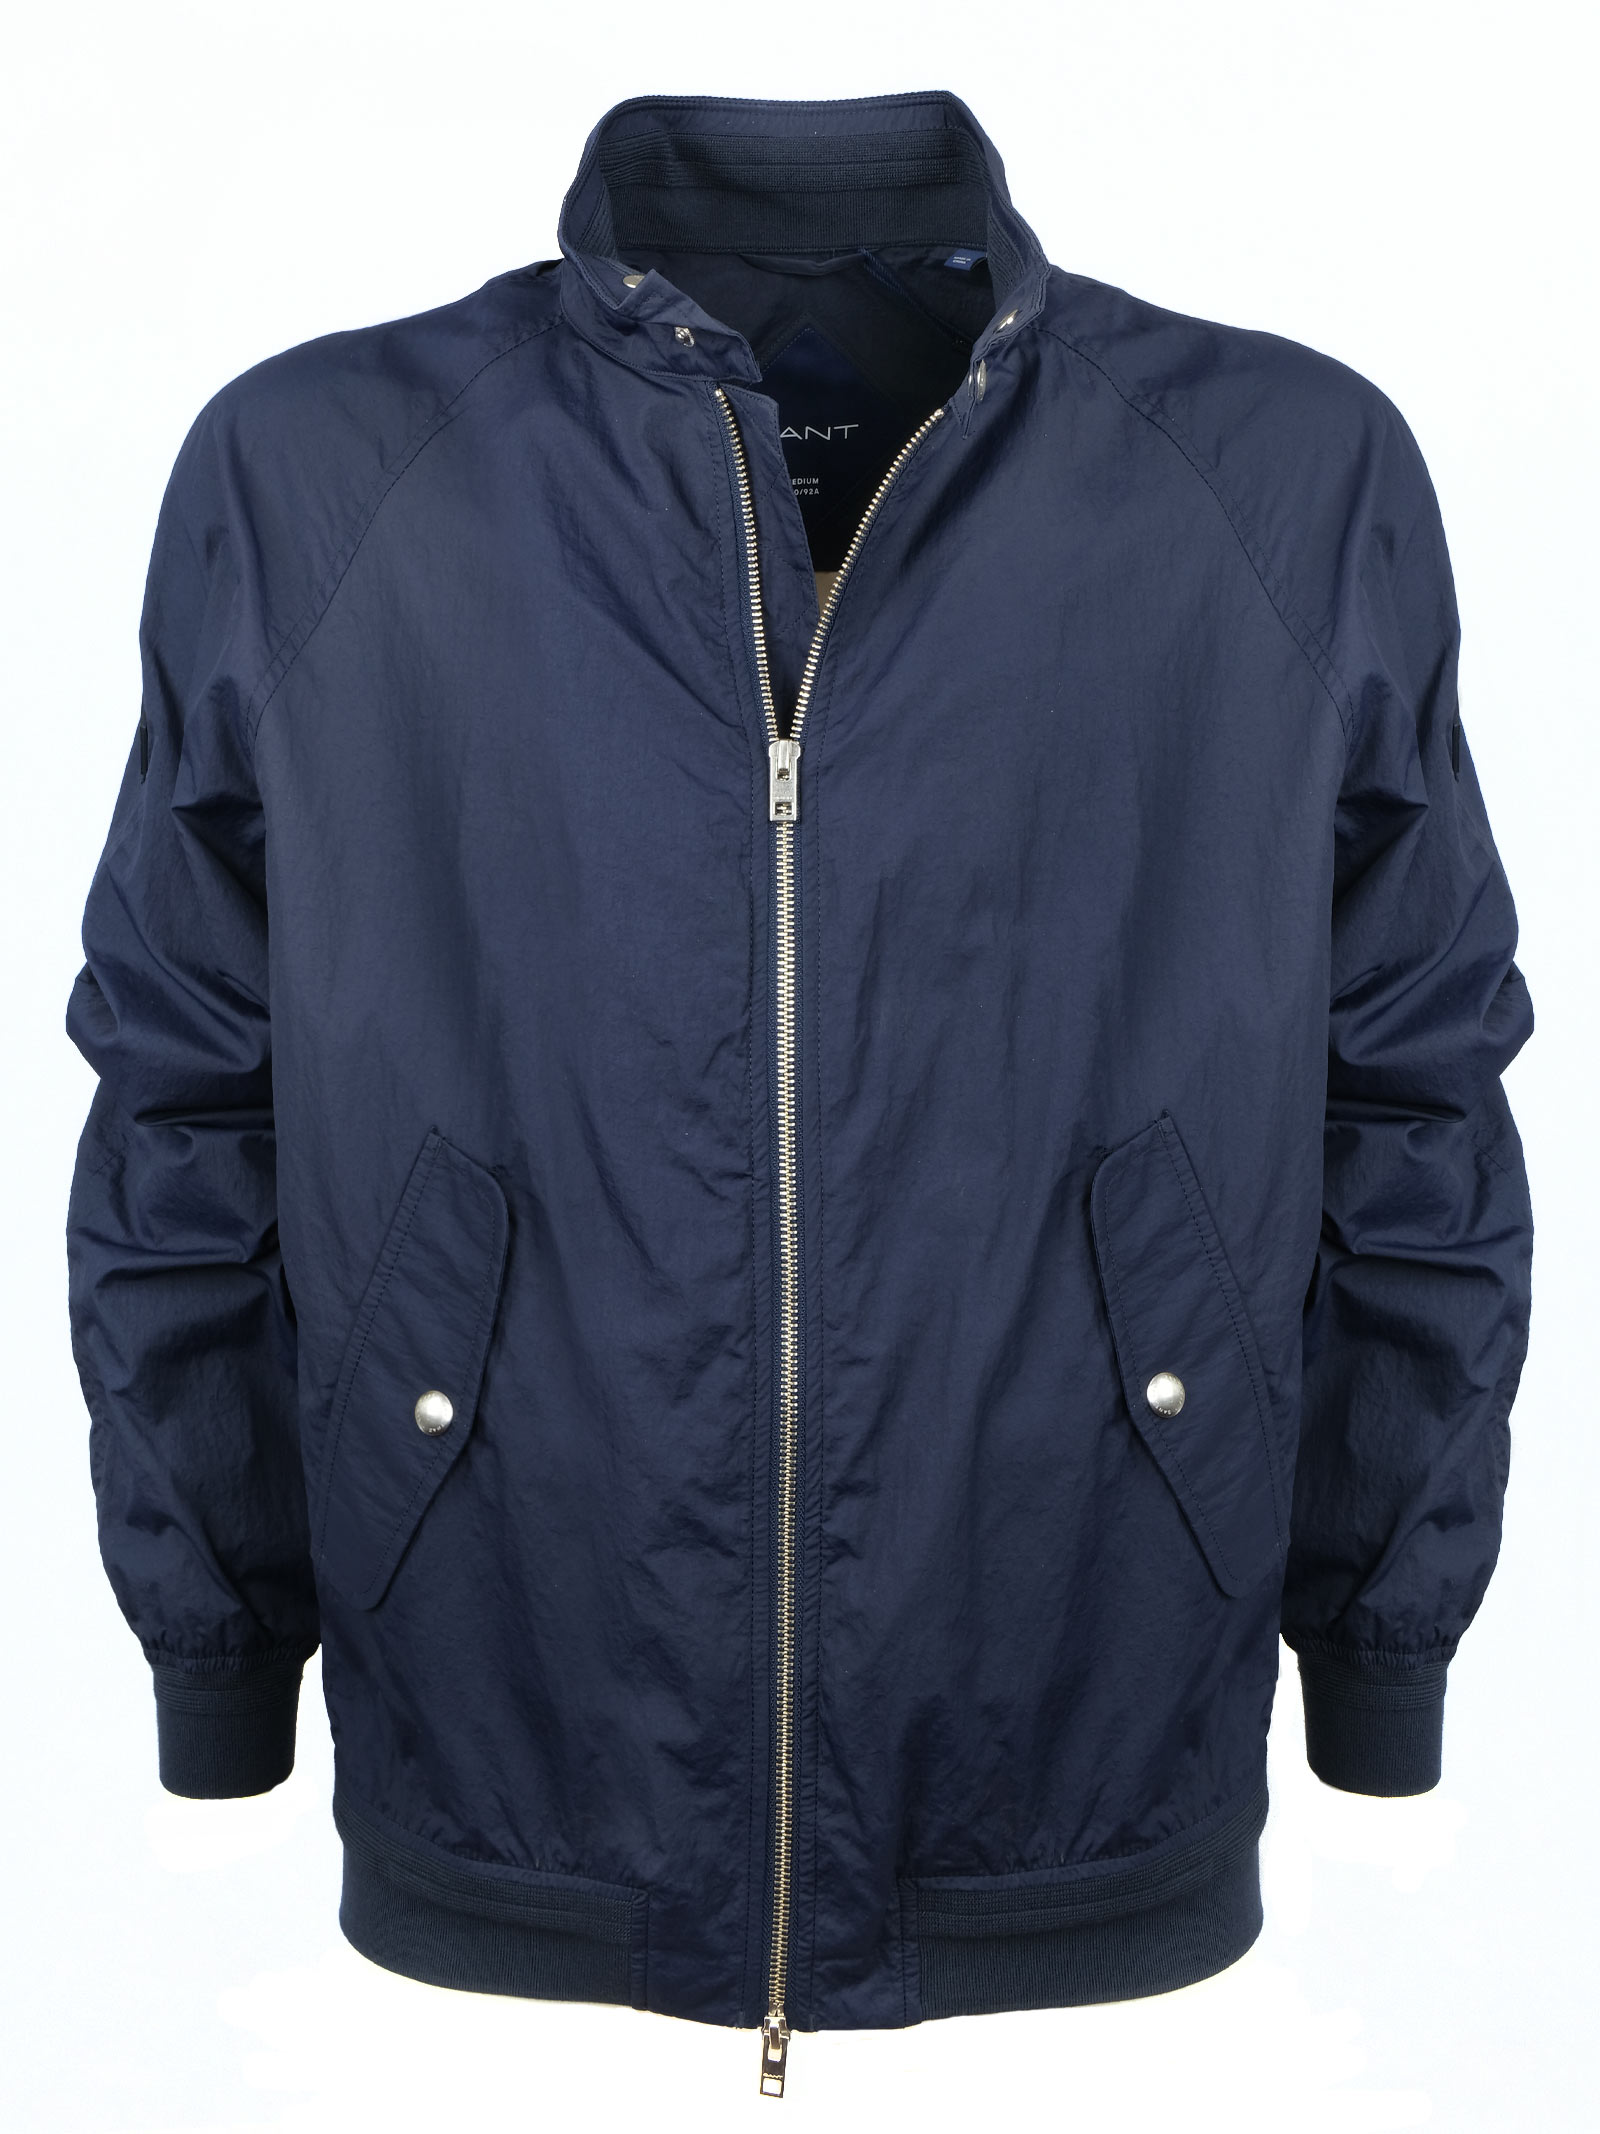 Windshield jacket GANT | Jackets | 7006132433